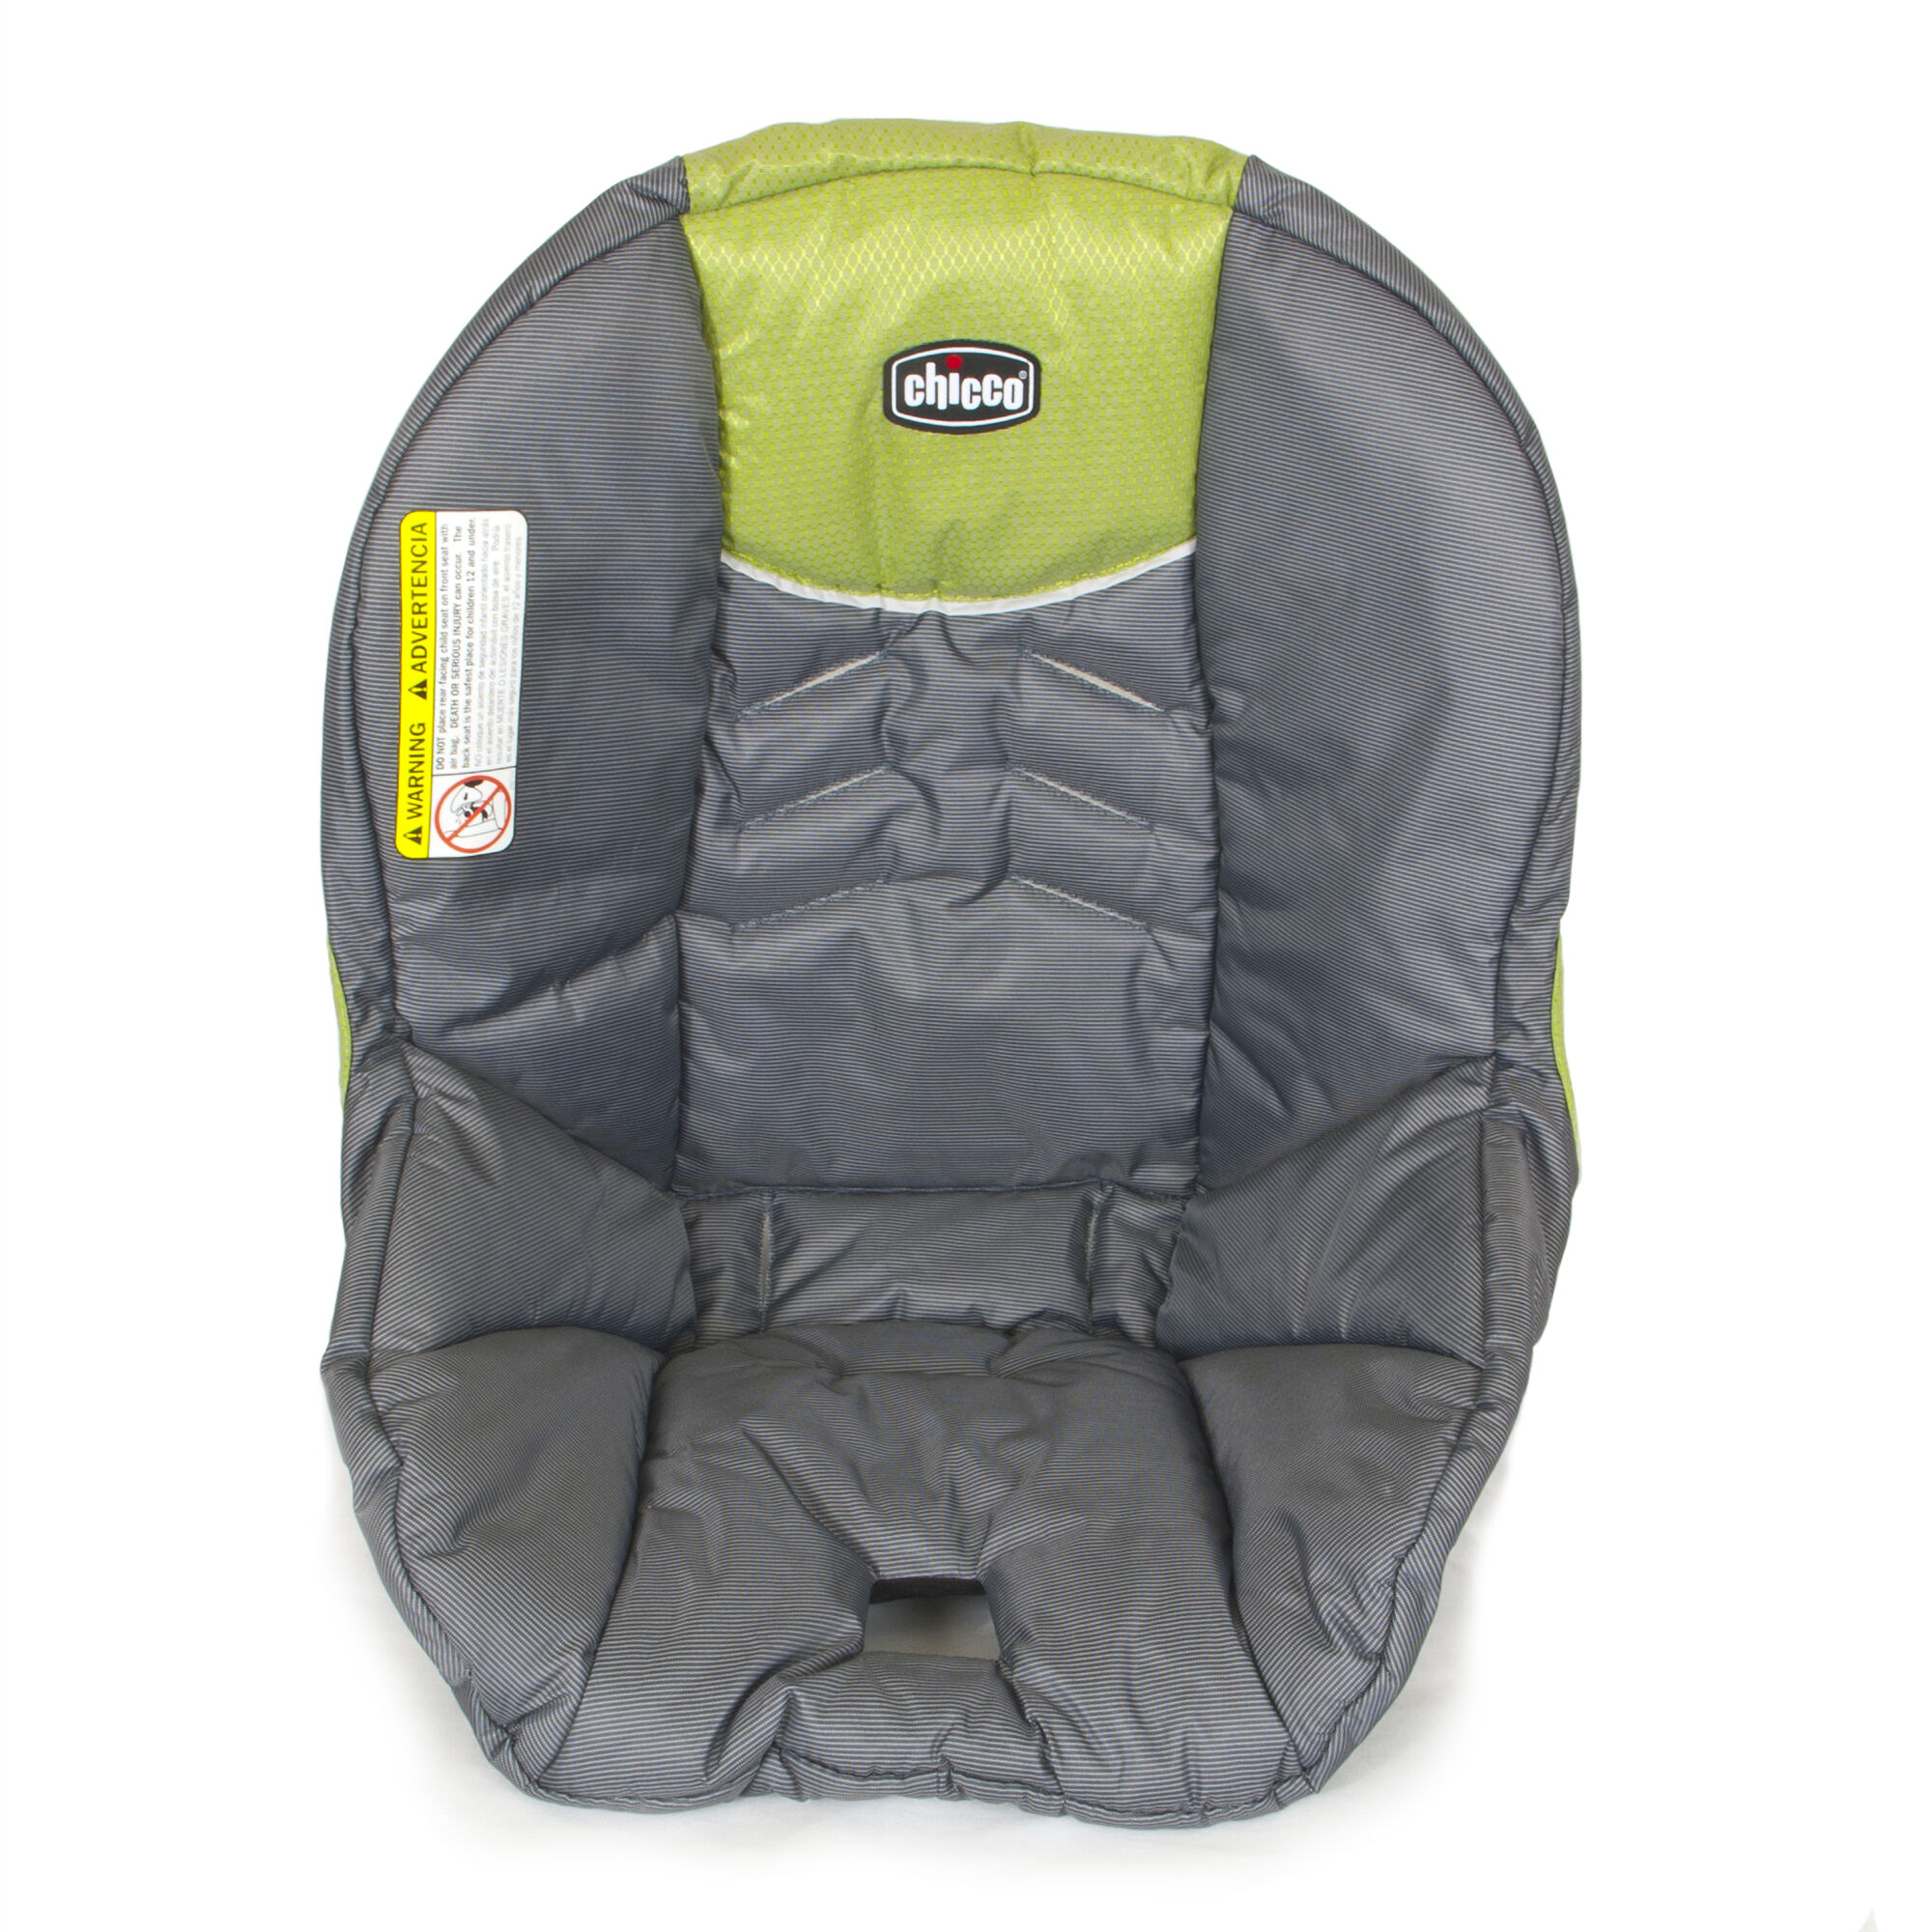 Keyfit  Infant Car Seat Cover